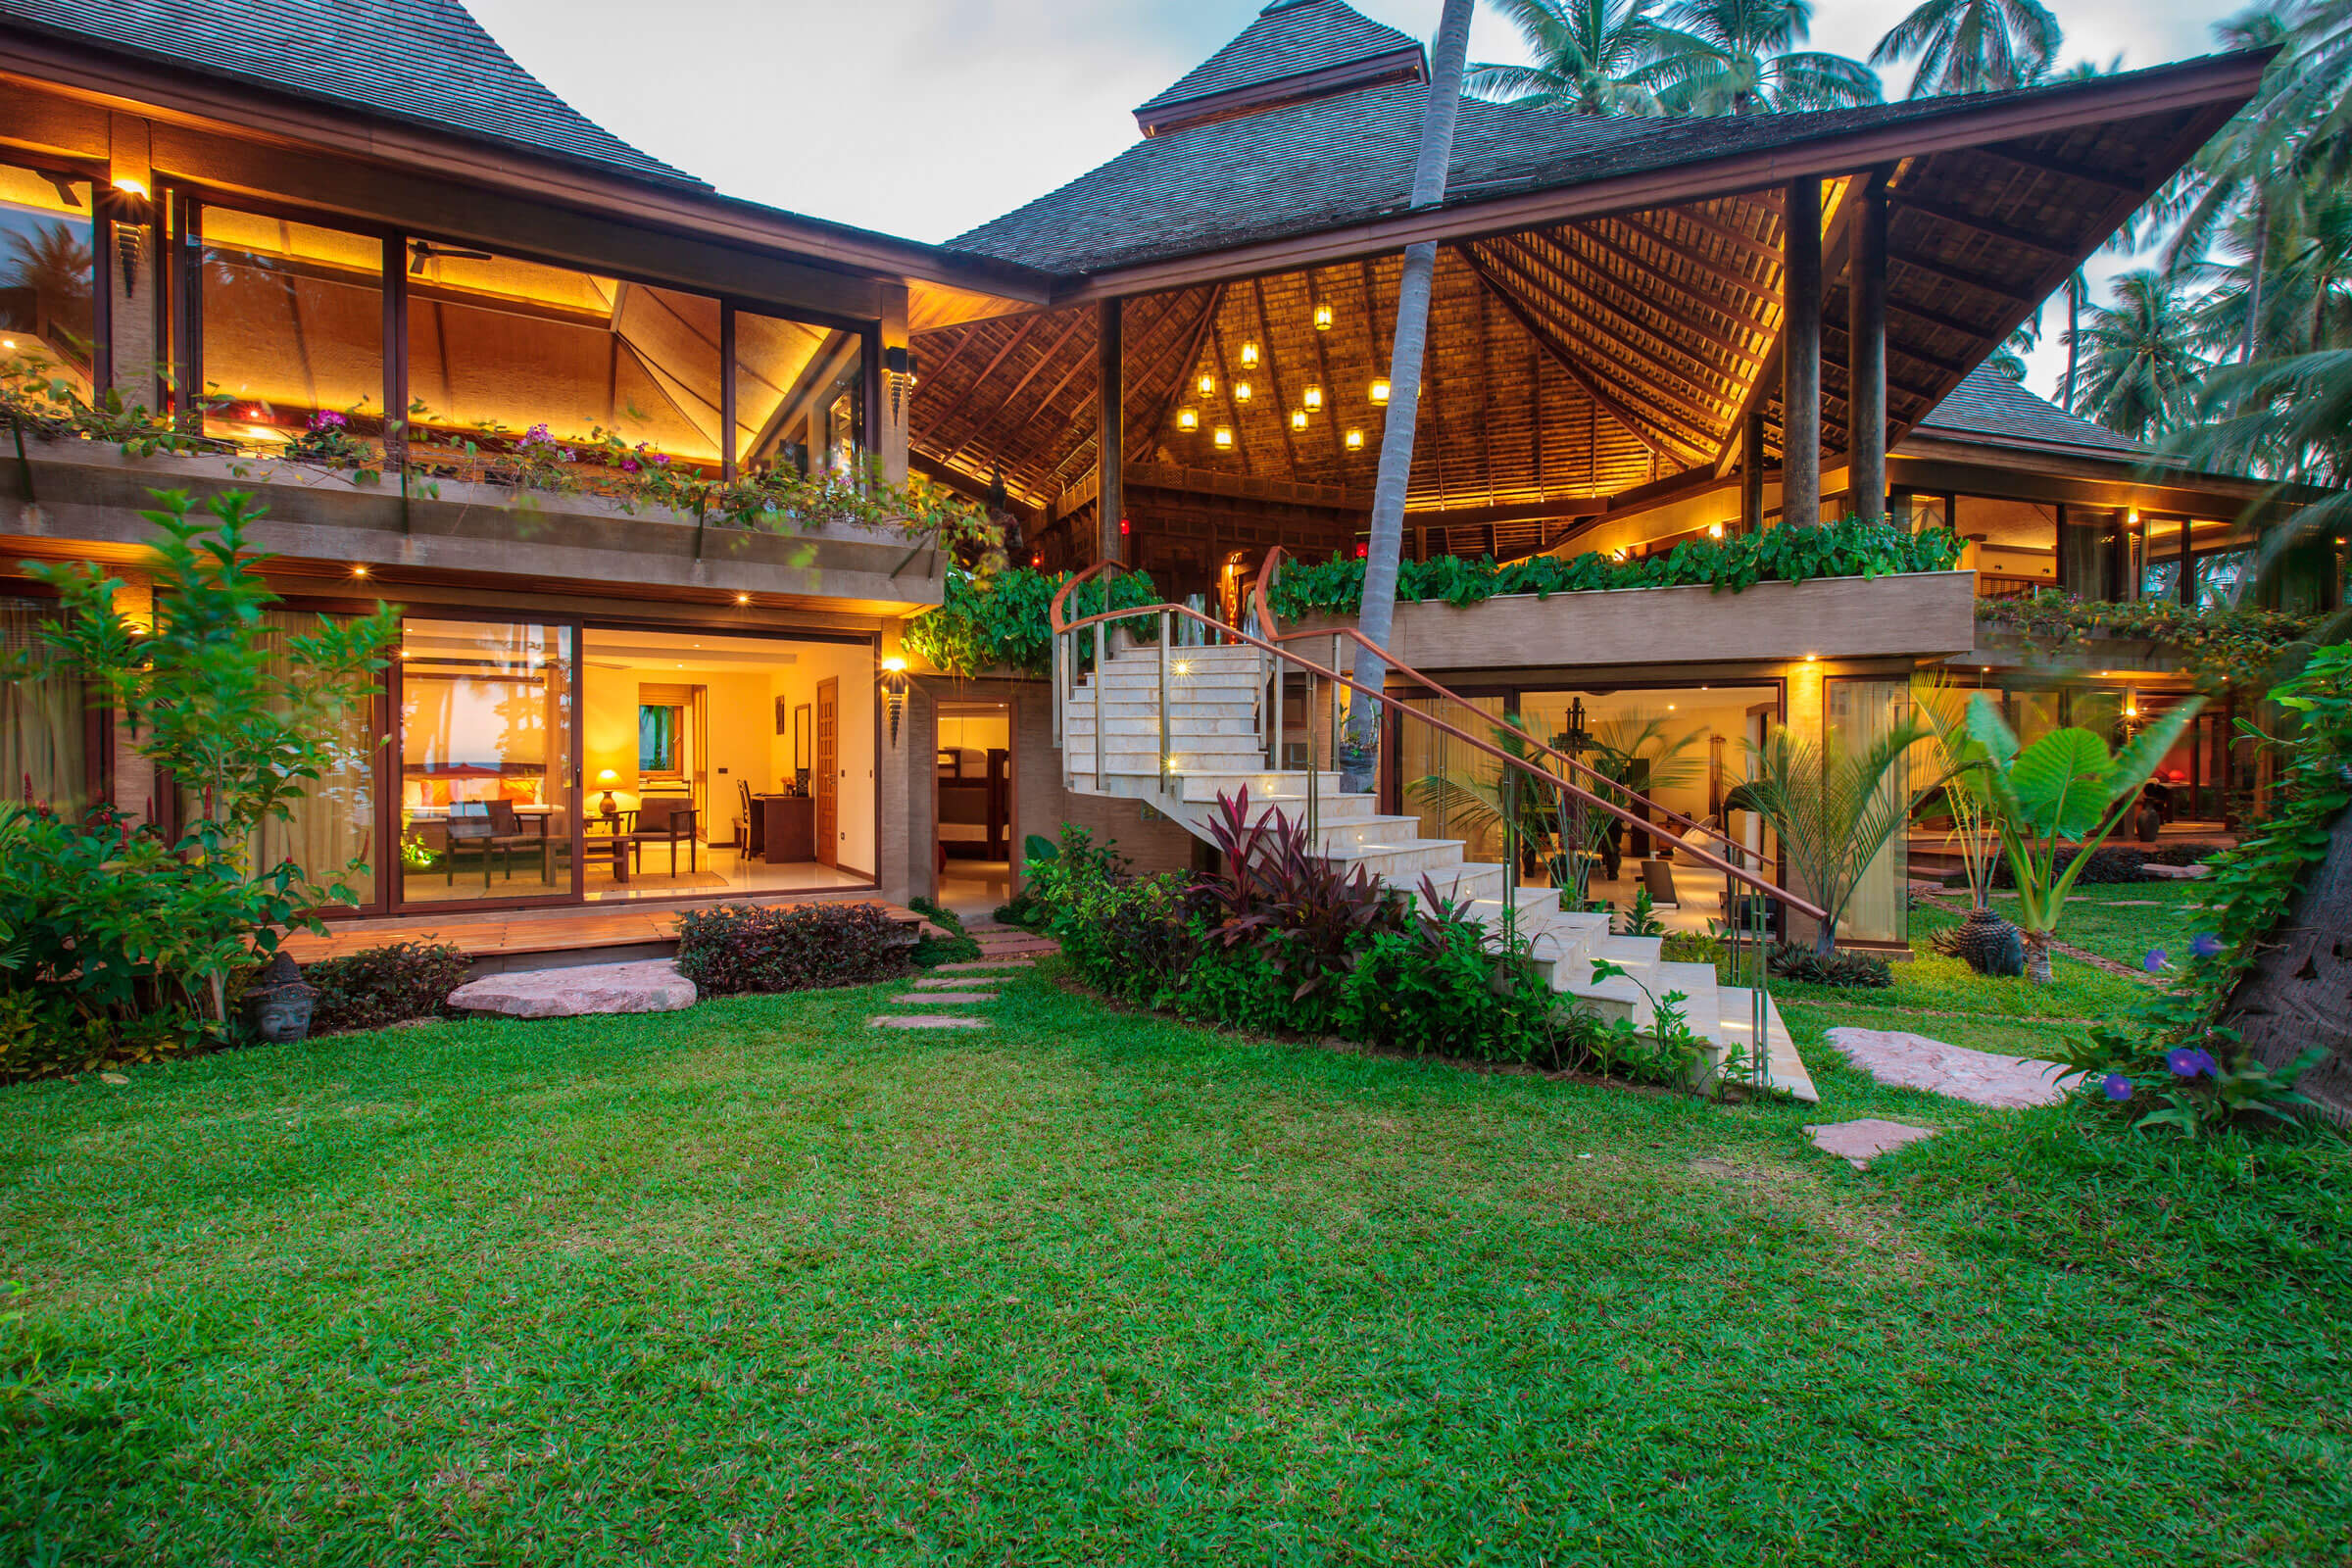 BEST LUXURY VILLAS IN THAILAND